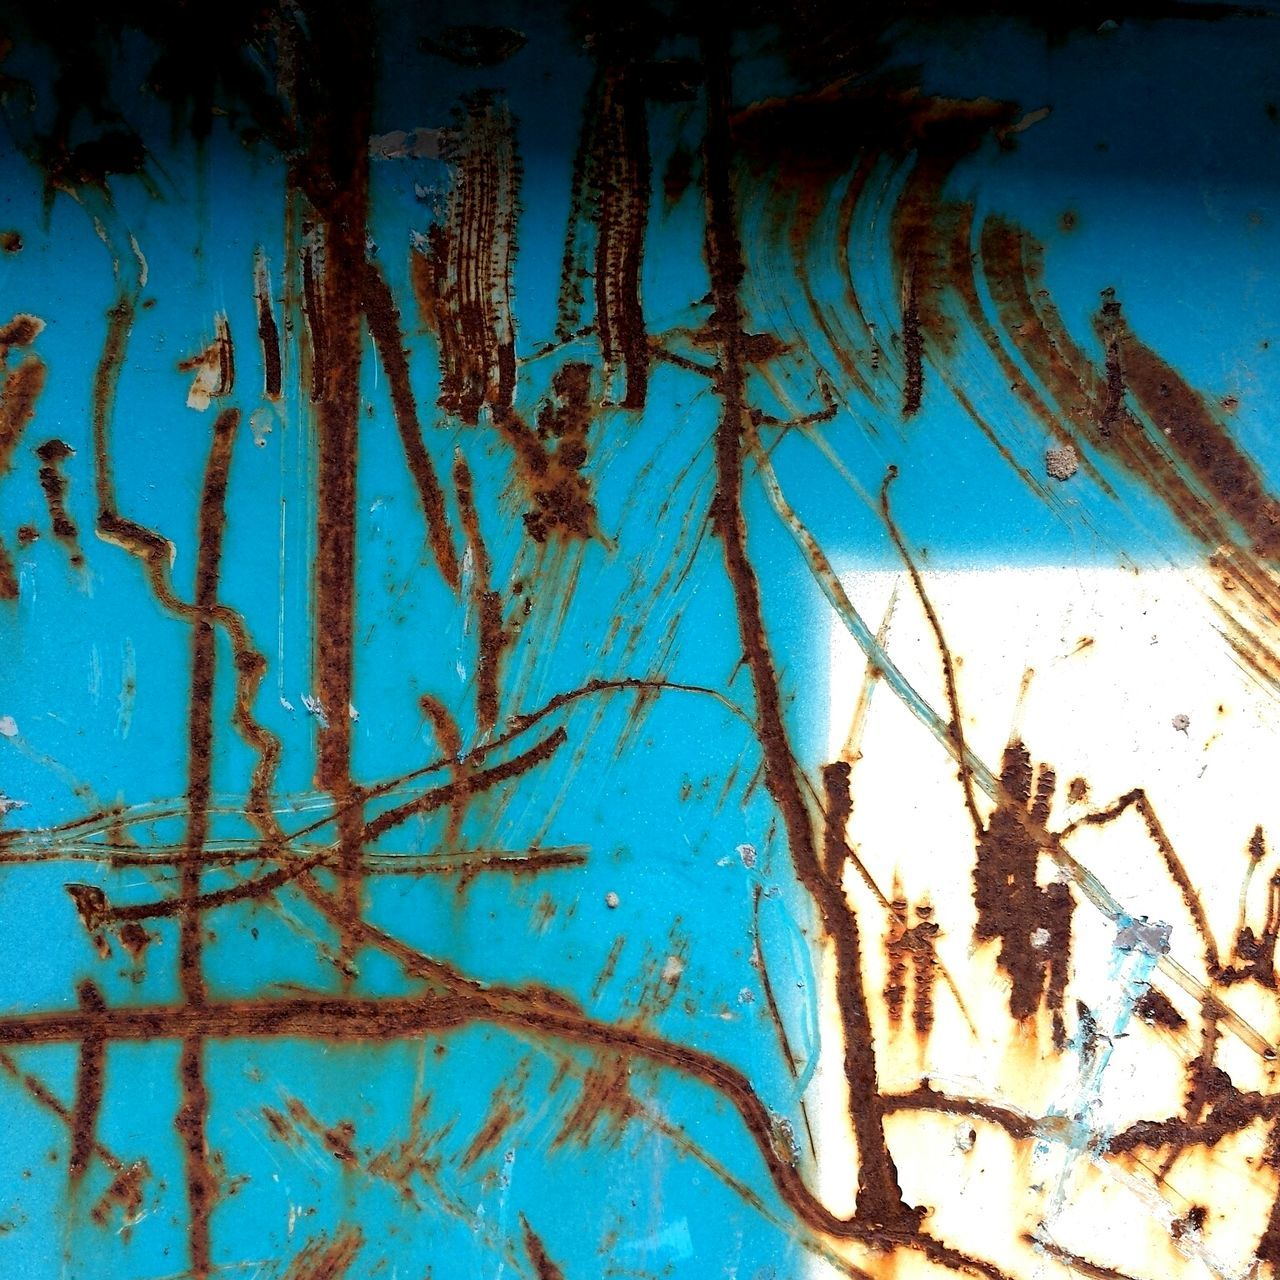 Dumpster Paint Decay Rust Abstract Unintentionalart Accidentalart Unintentional Art Accidental Art